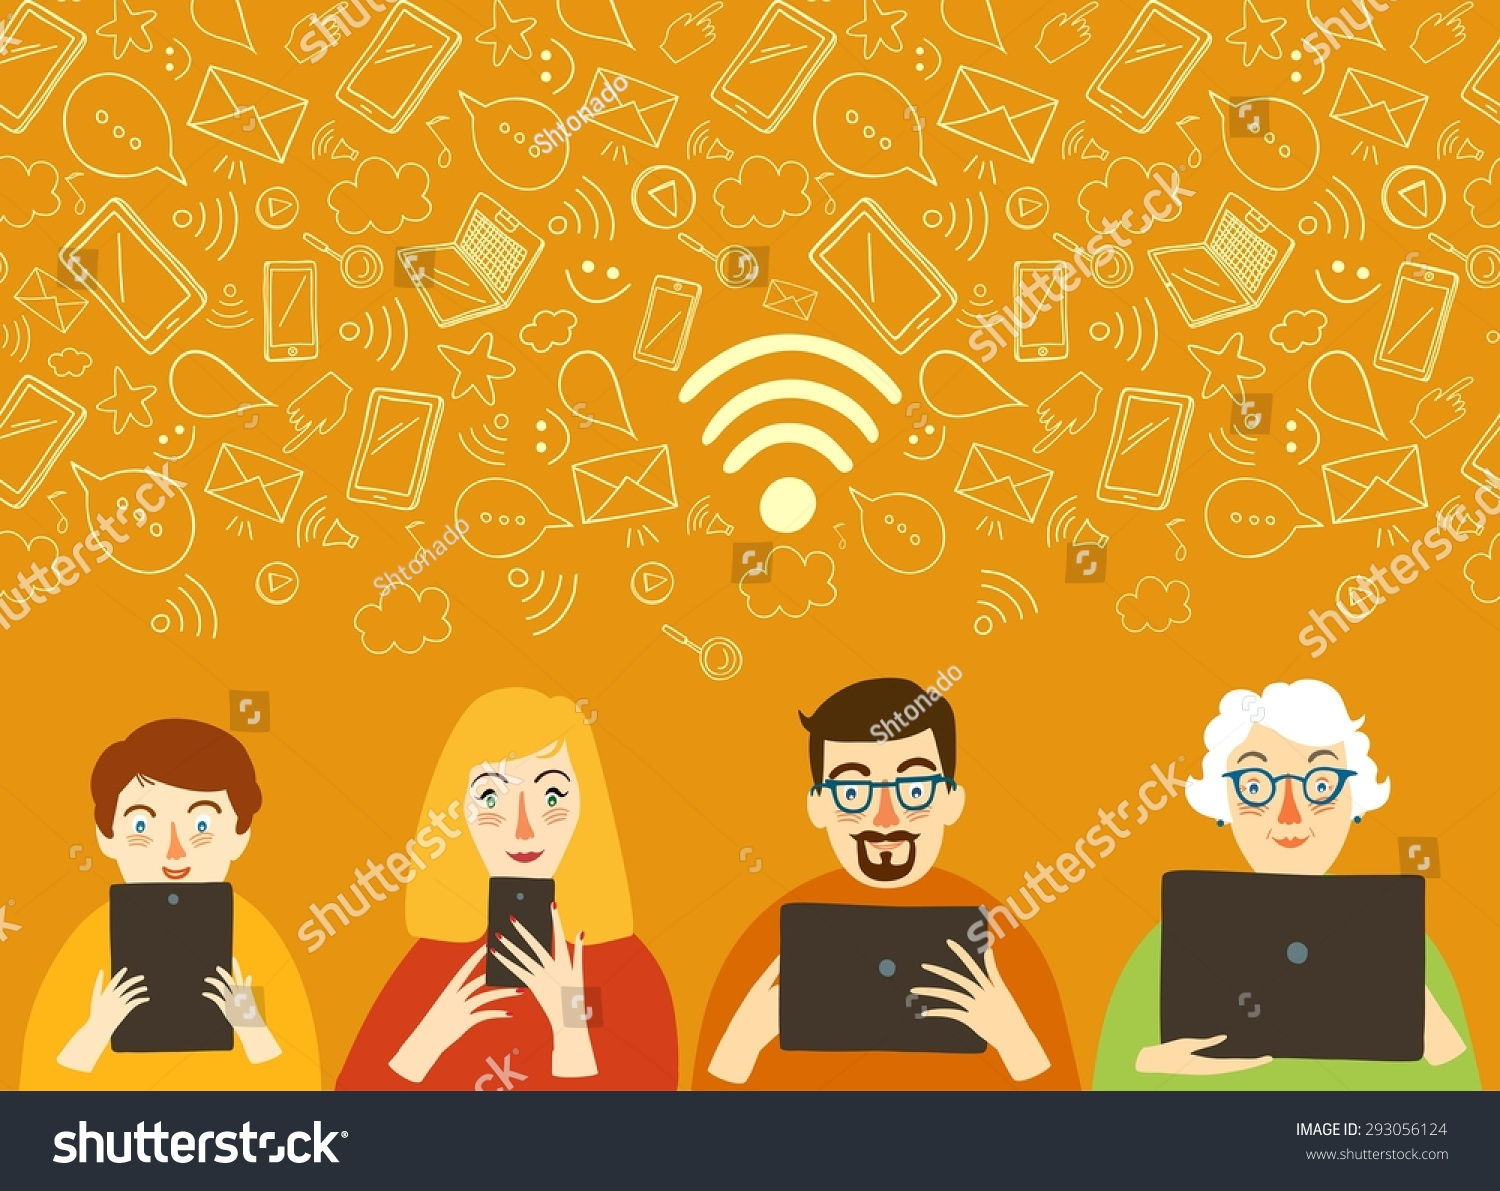 Internet connecting people essay